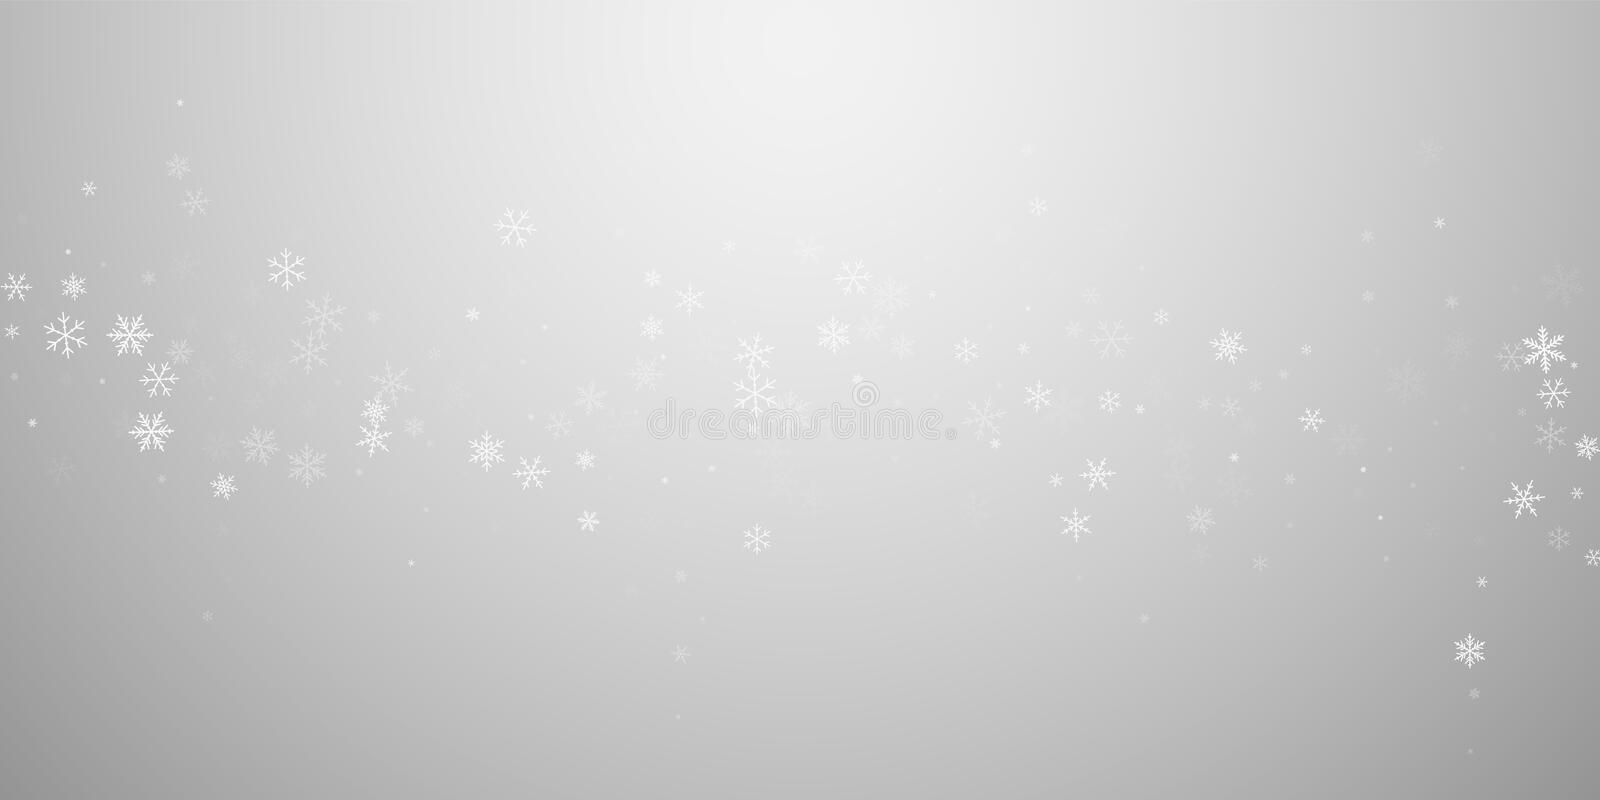 Sparse snowfall Christmas background. Subtle flyin. G snow flakes and stars on light grey background. Attractive winter silver snowflake overlay template royalty free illustration